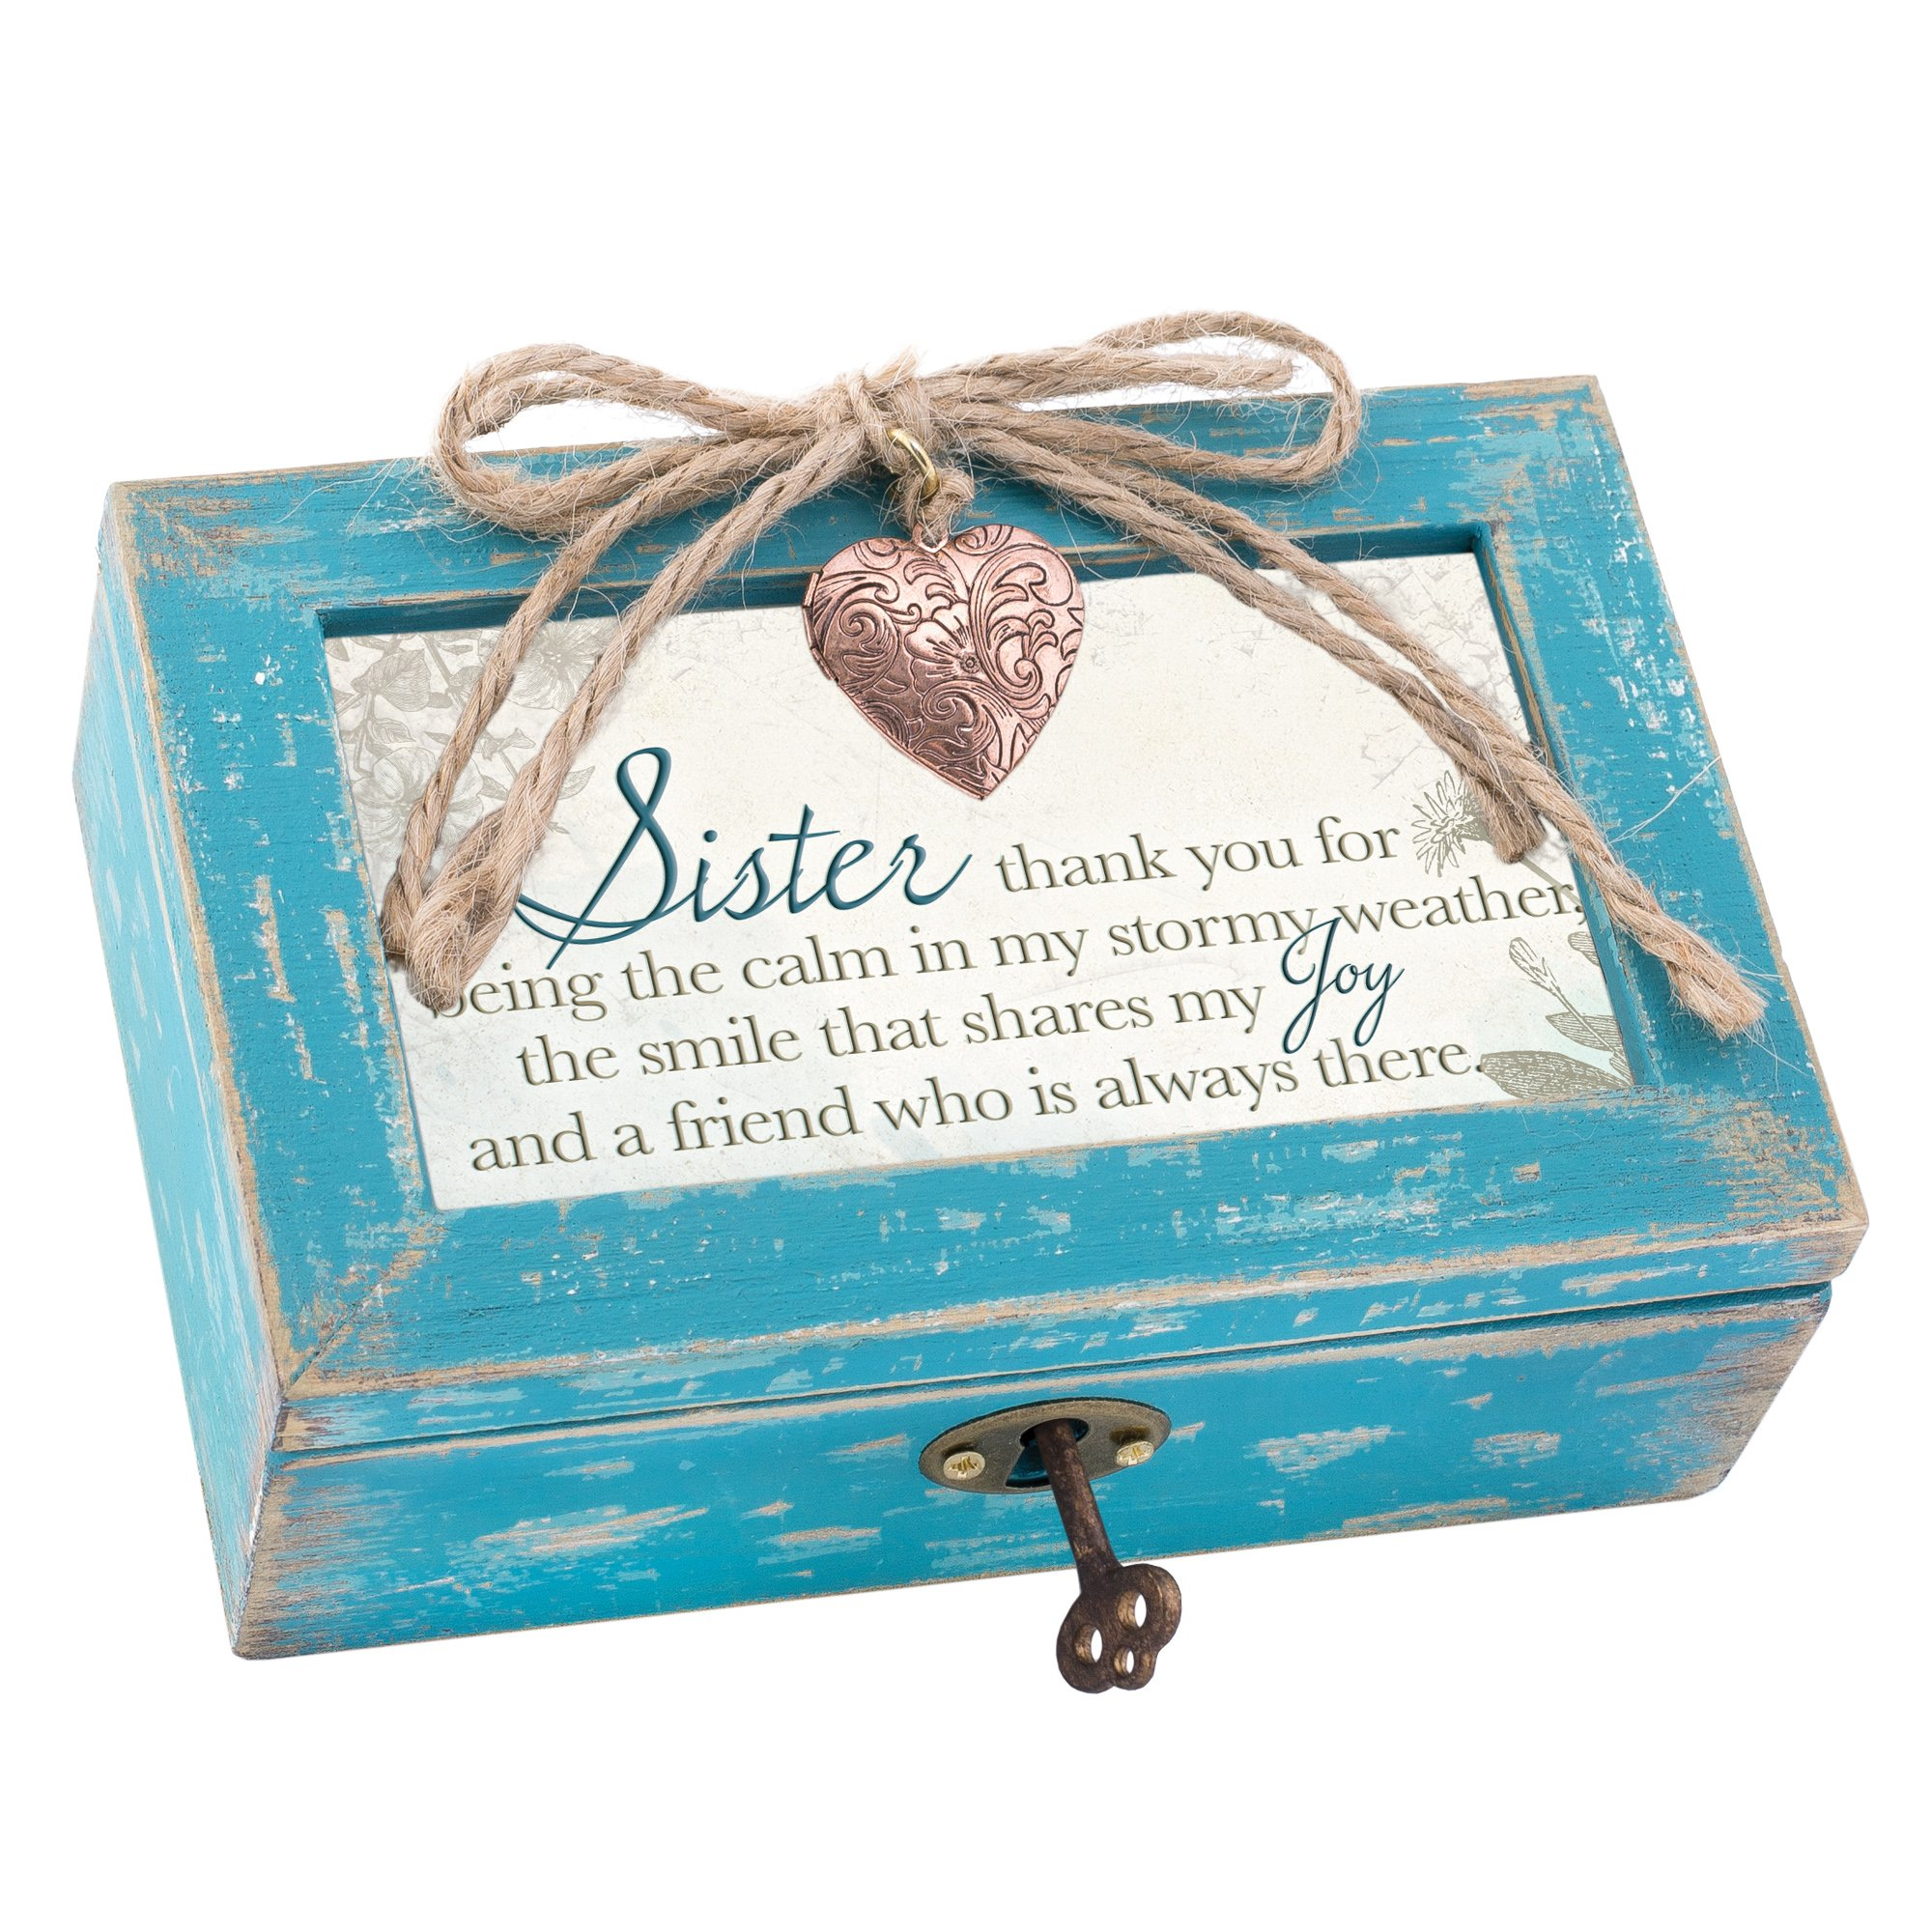 Sister My Joy and Friend Always Teal Wood Locket Jewelry Music Box Plays Tune Wonderful World by Cottage Garden